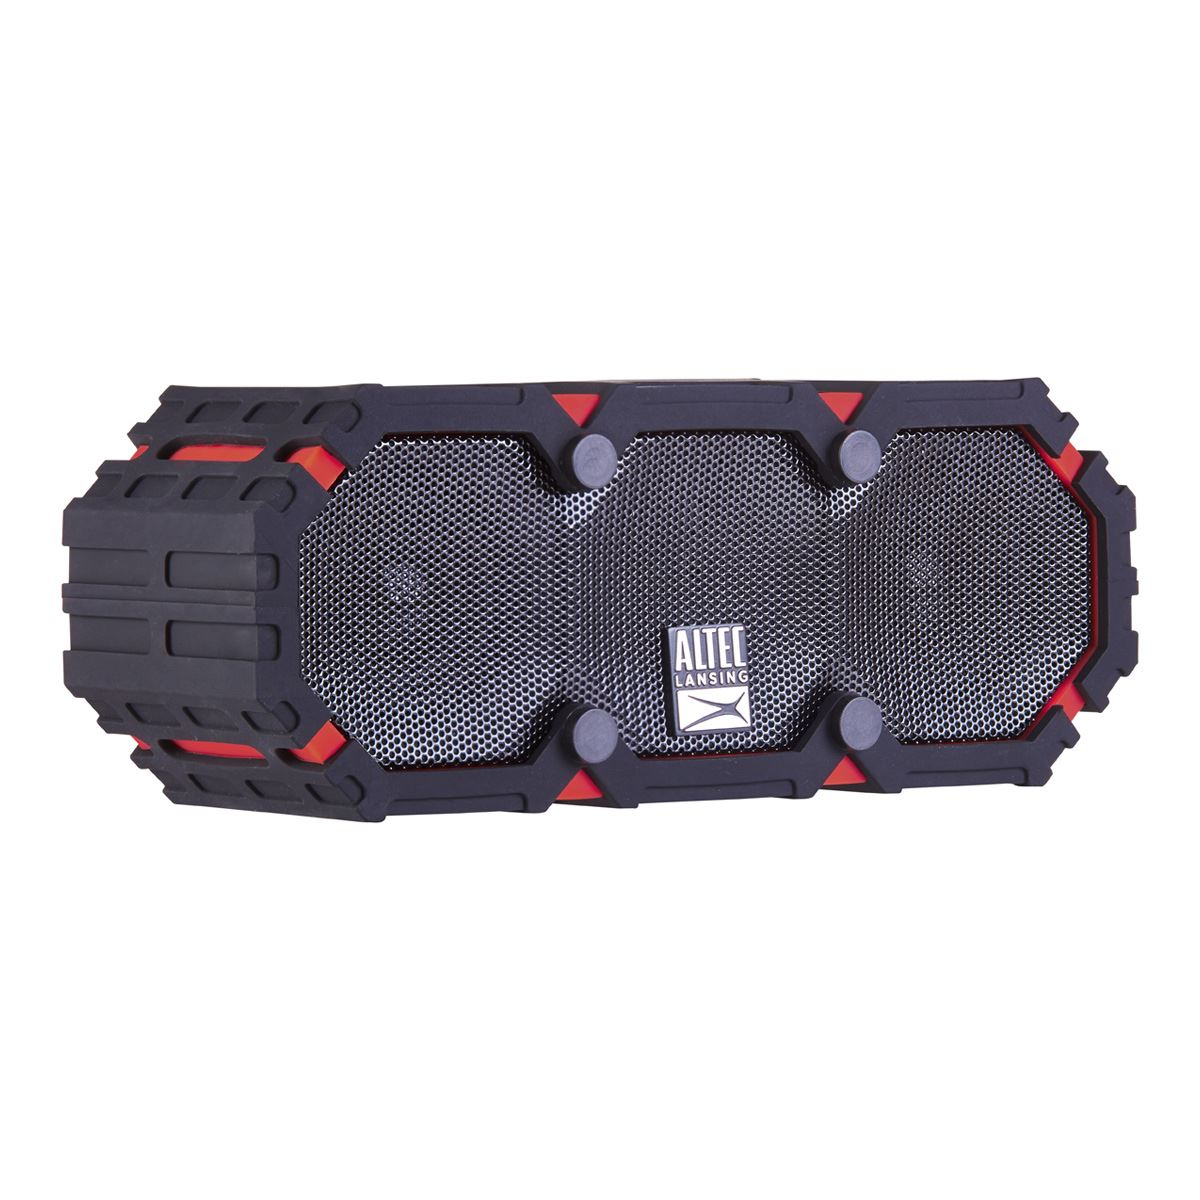 Bocina Altec Lansing IMW478DR LIFEJACKET MINI Roja